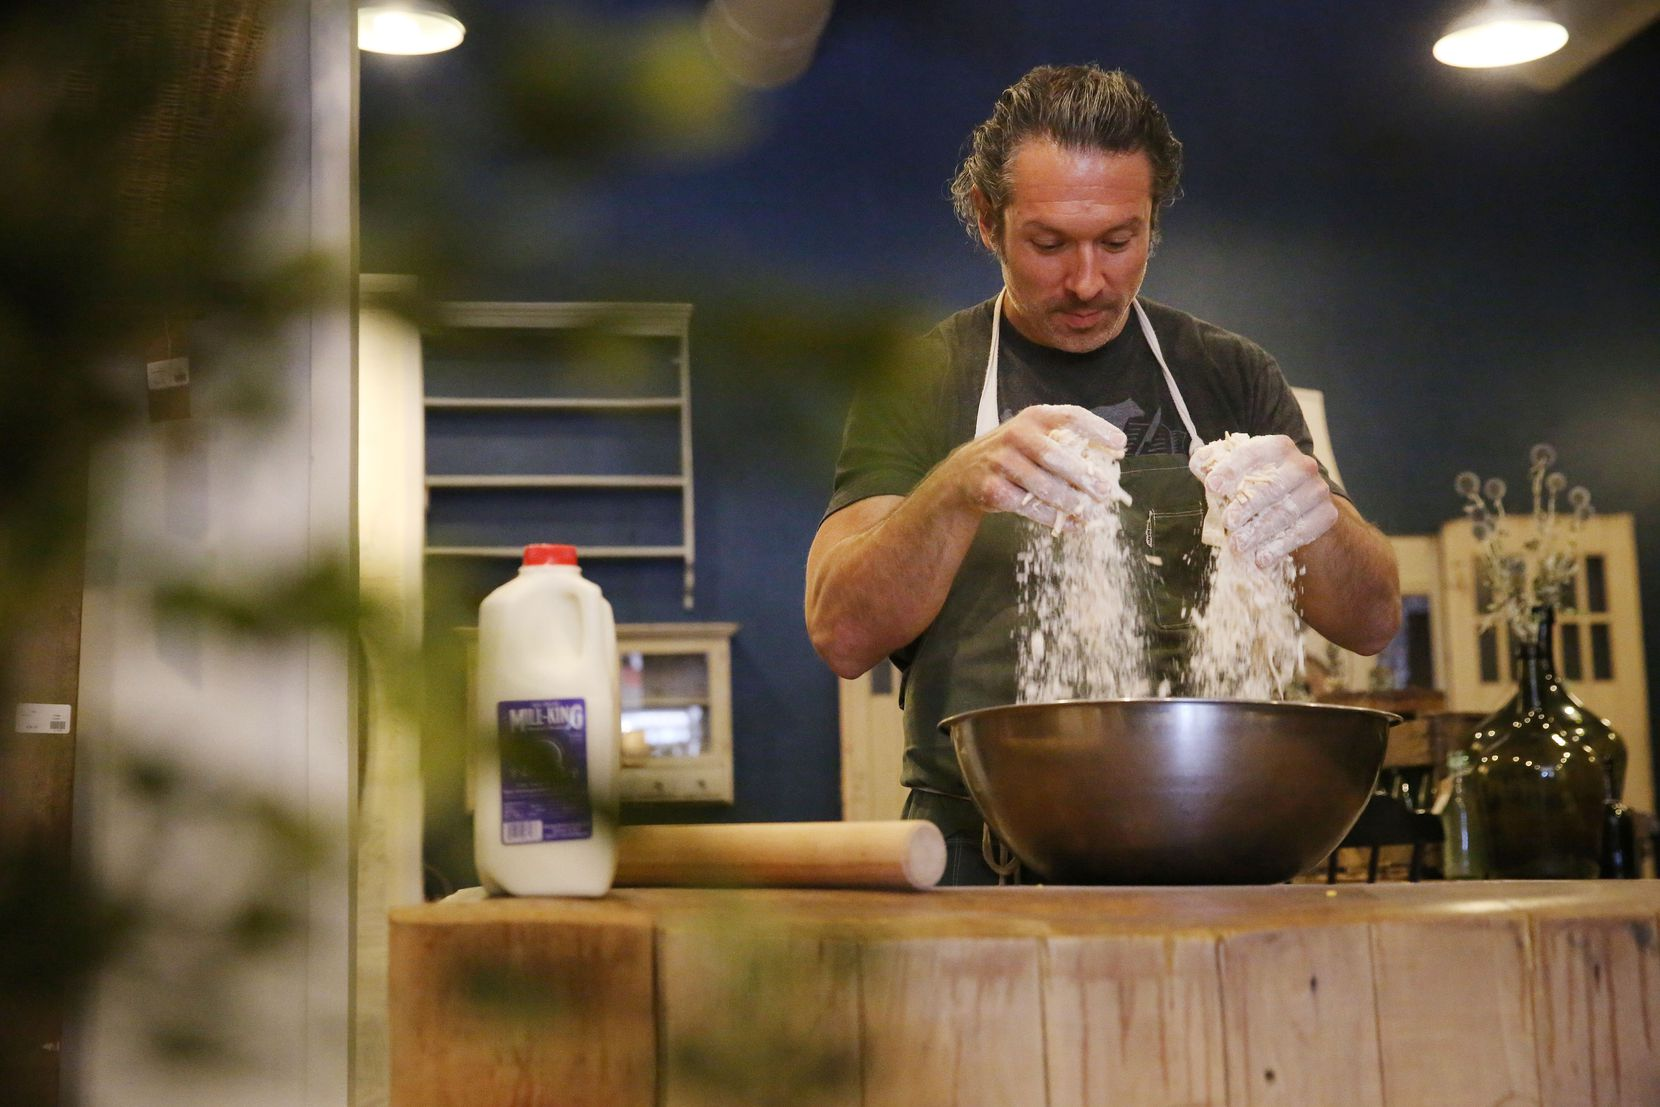 Chef Robert Lyford combines ingredients while preparing cheddar biscuits at Patina Green Home and Market in McKinney.